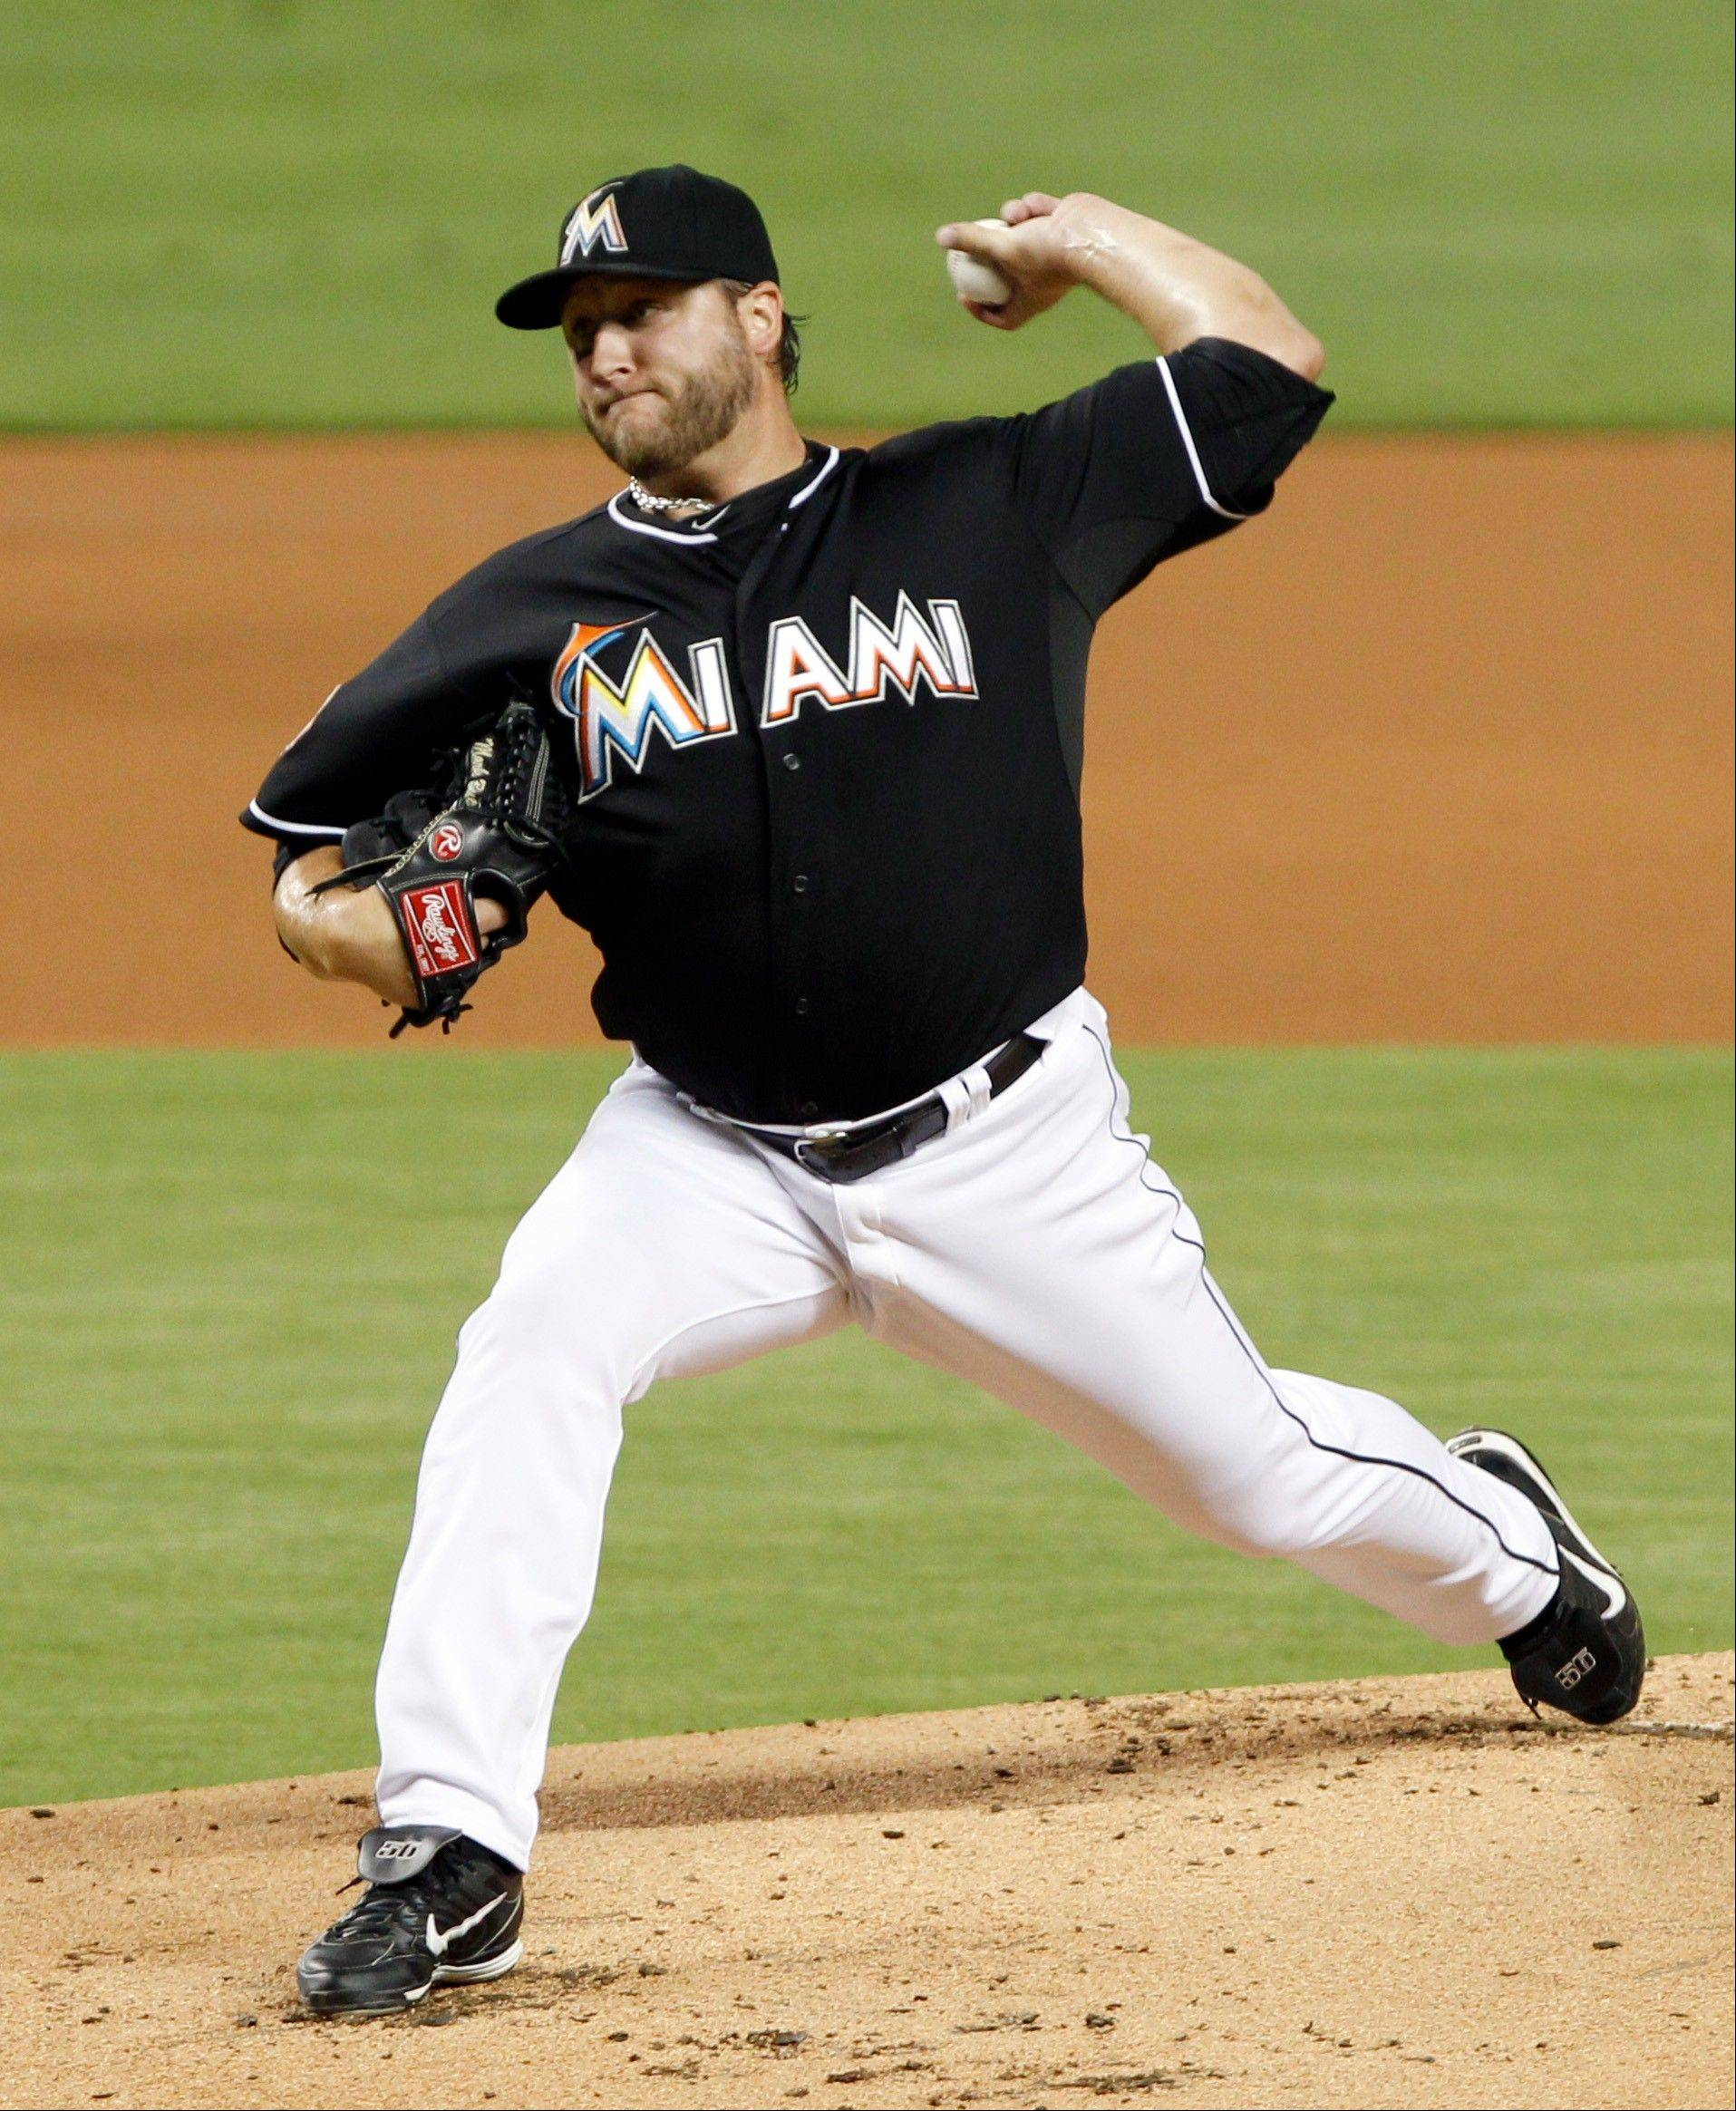 Miami�s Mark Buehrle pitched eight innings Friday at home against the Phillies, allowing one run and six hits. He struck out eight as he surpassed the 200-inning mark for the 12th consecutive season.